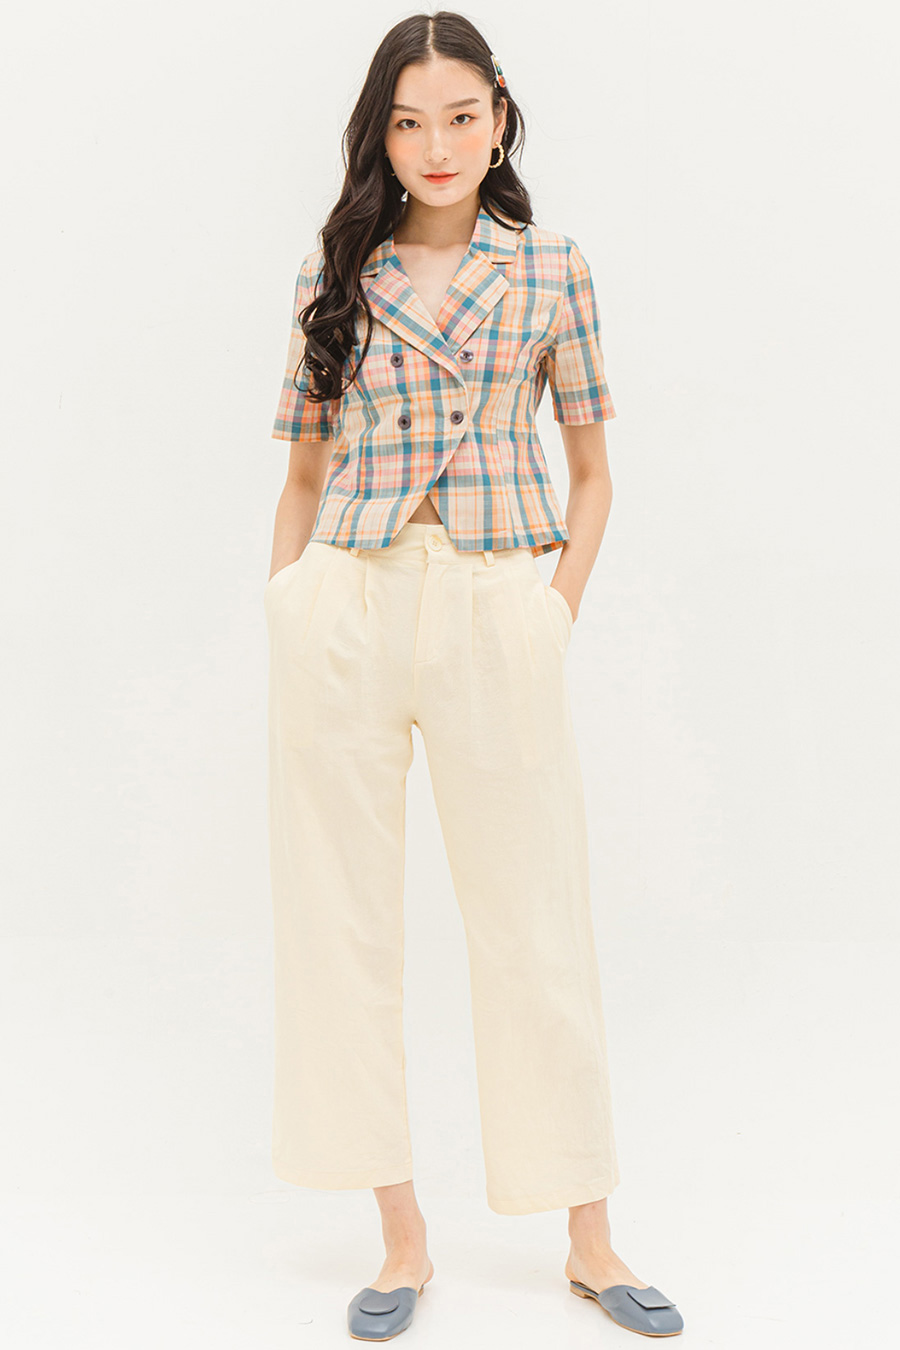 AMADA TOP - PLAID